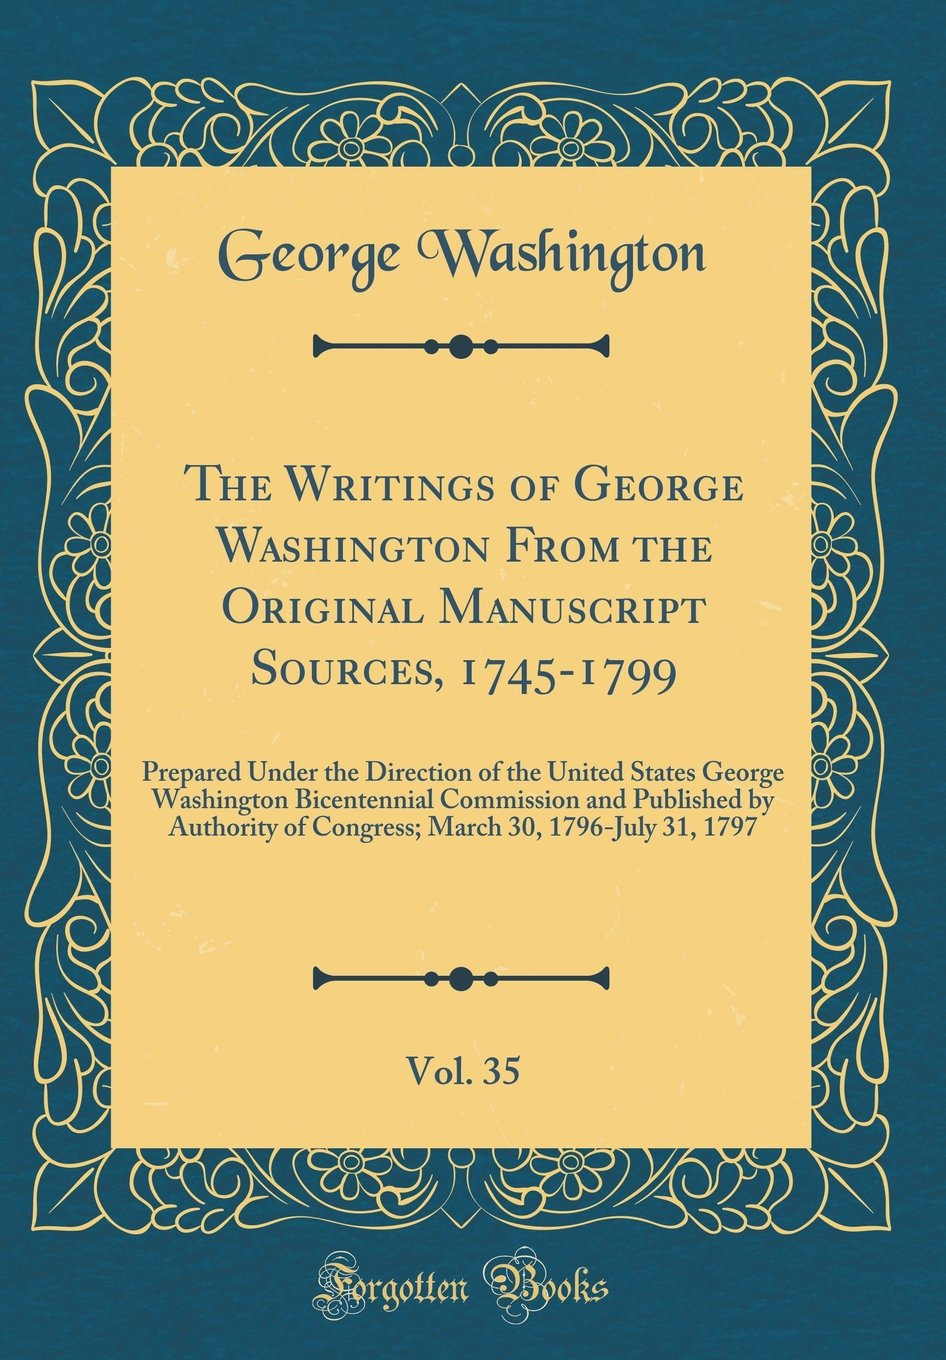 Download The Writings of George Washington from the Original Manuscript Sources, 1745-1799, Vol. 35: Prepared Under the Direction of the United States George ... of Congress; March 30, 1796-July 31, 1797 ebook